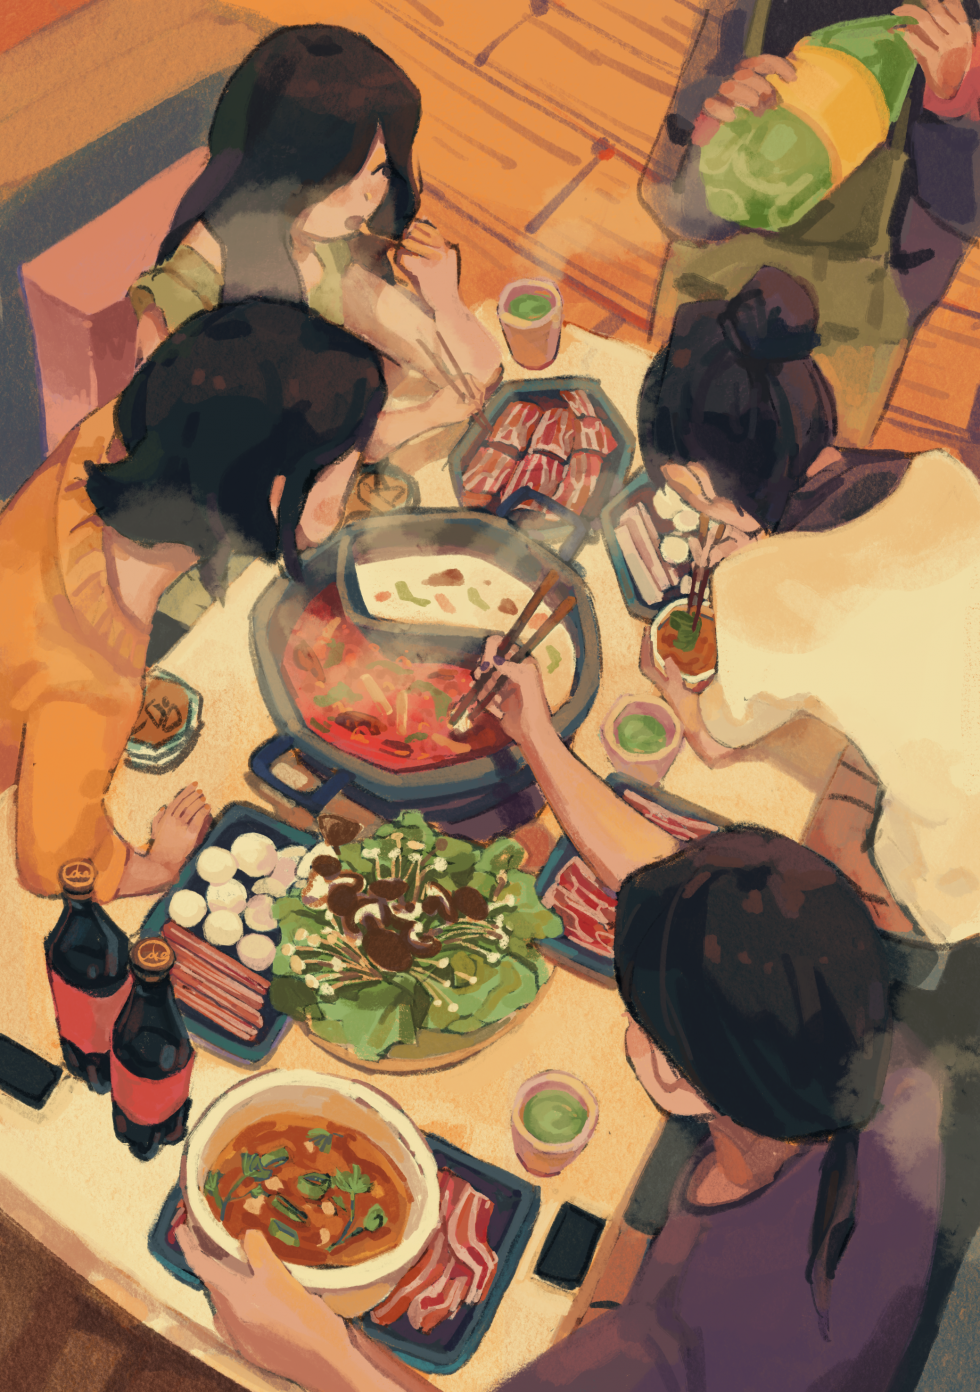 Digital Illustration about a girl having a hotpot party with her friends